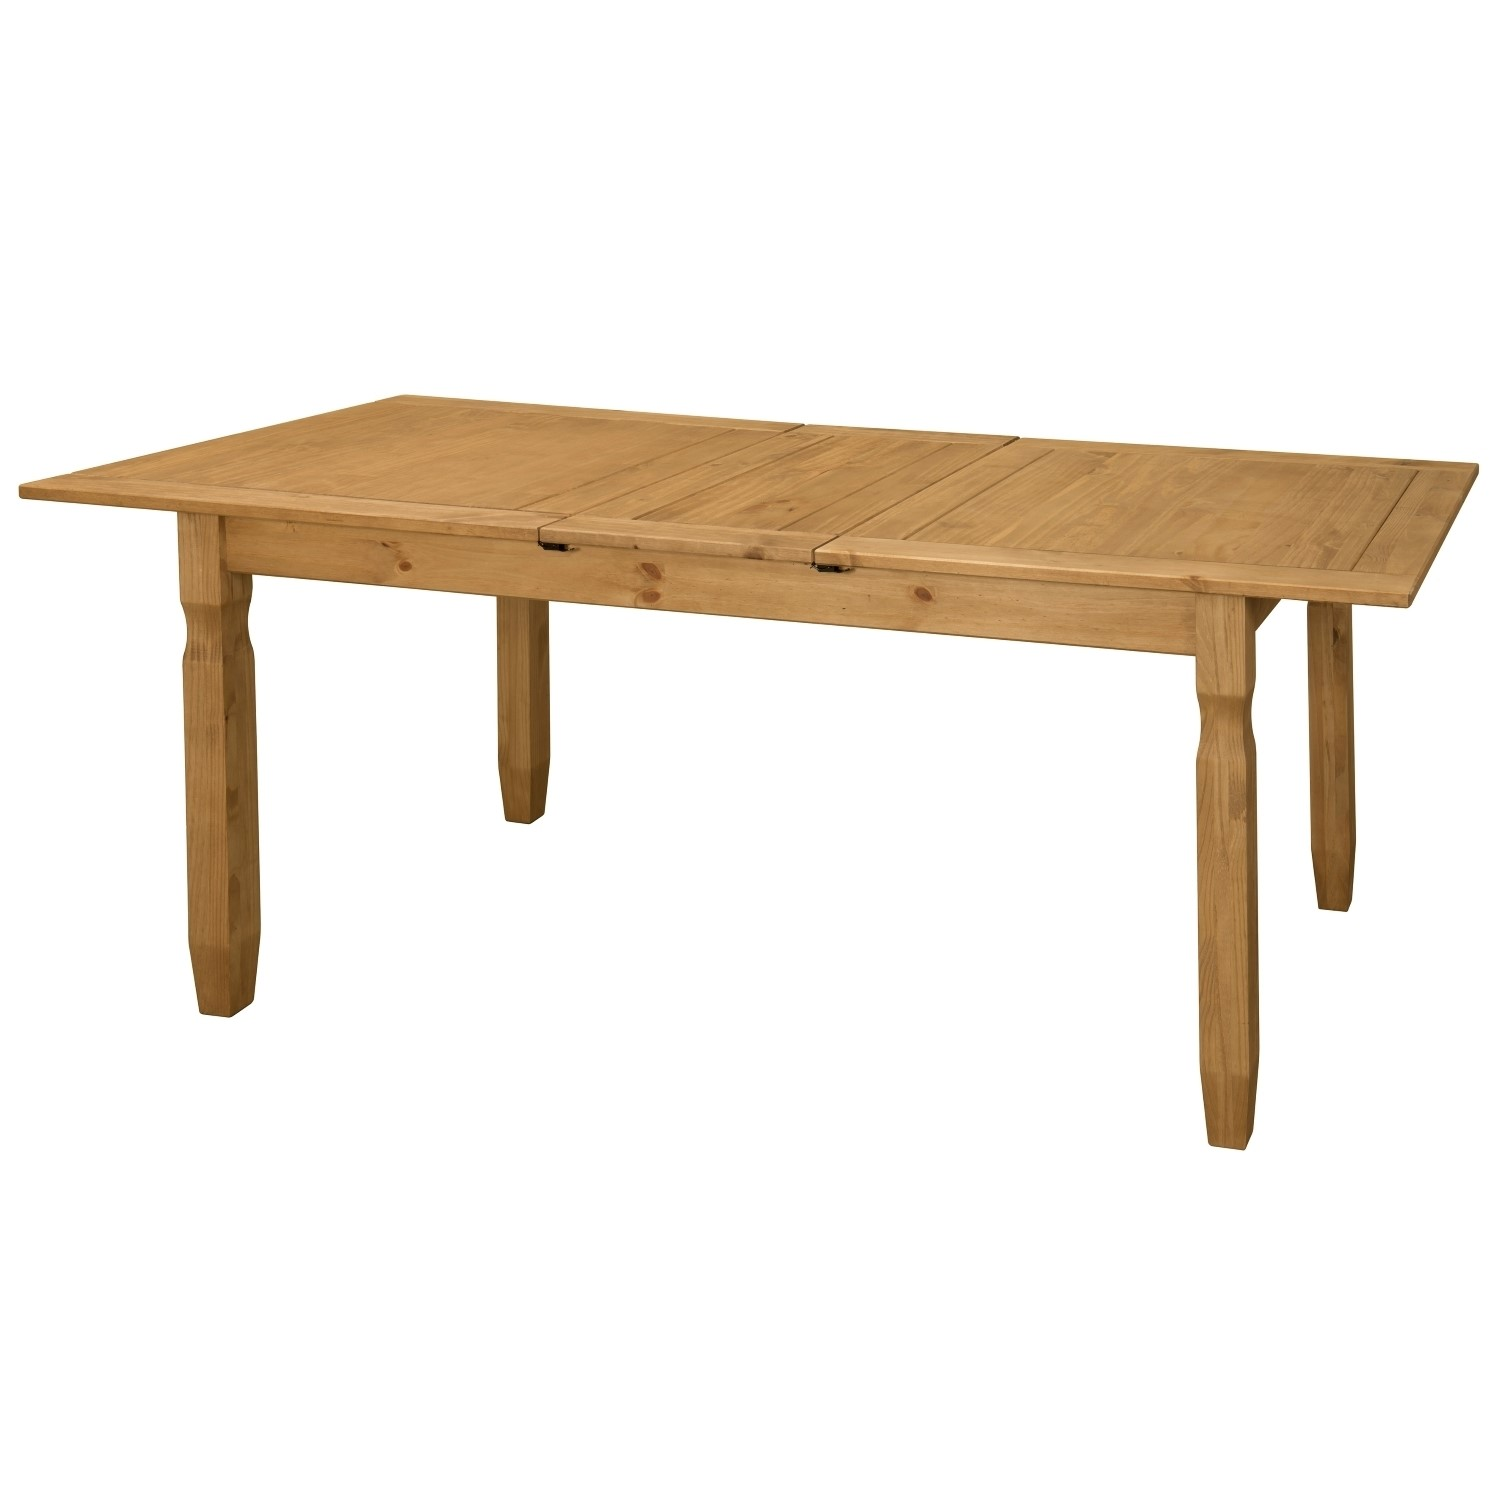 Esstisch Pinie Massiv Ausziehbar Corona Mexican Solid Pine Extendable Dining Table Set With